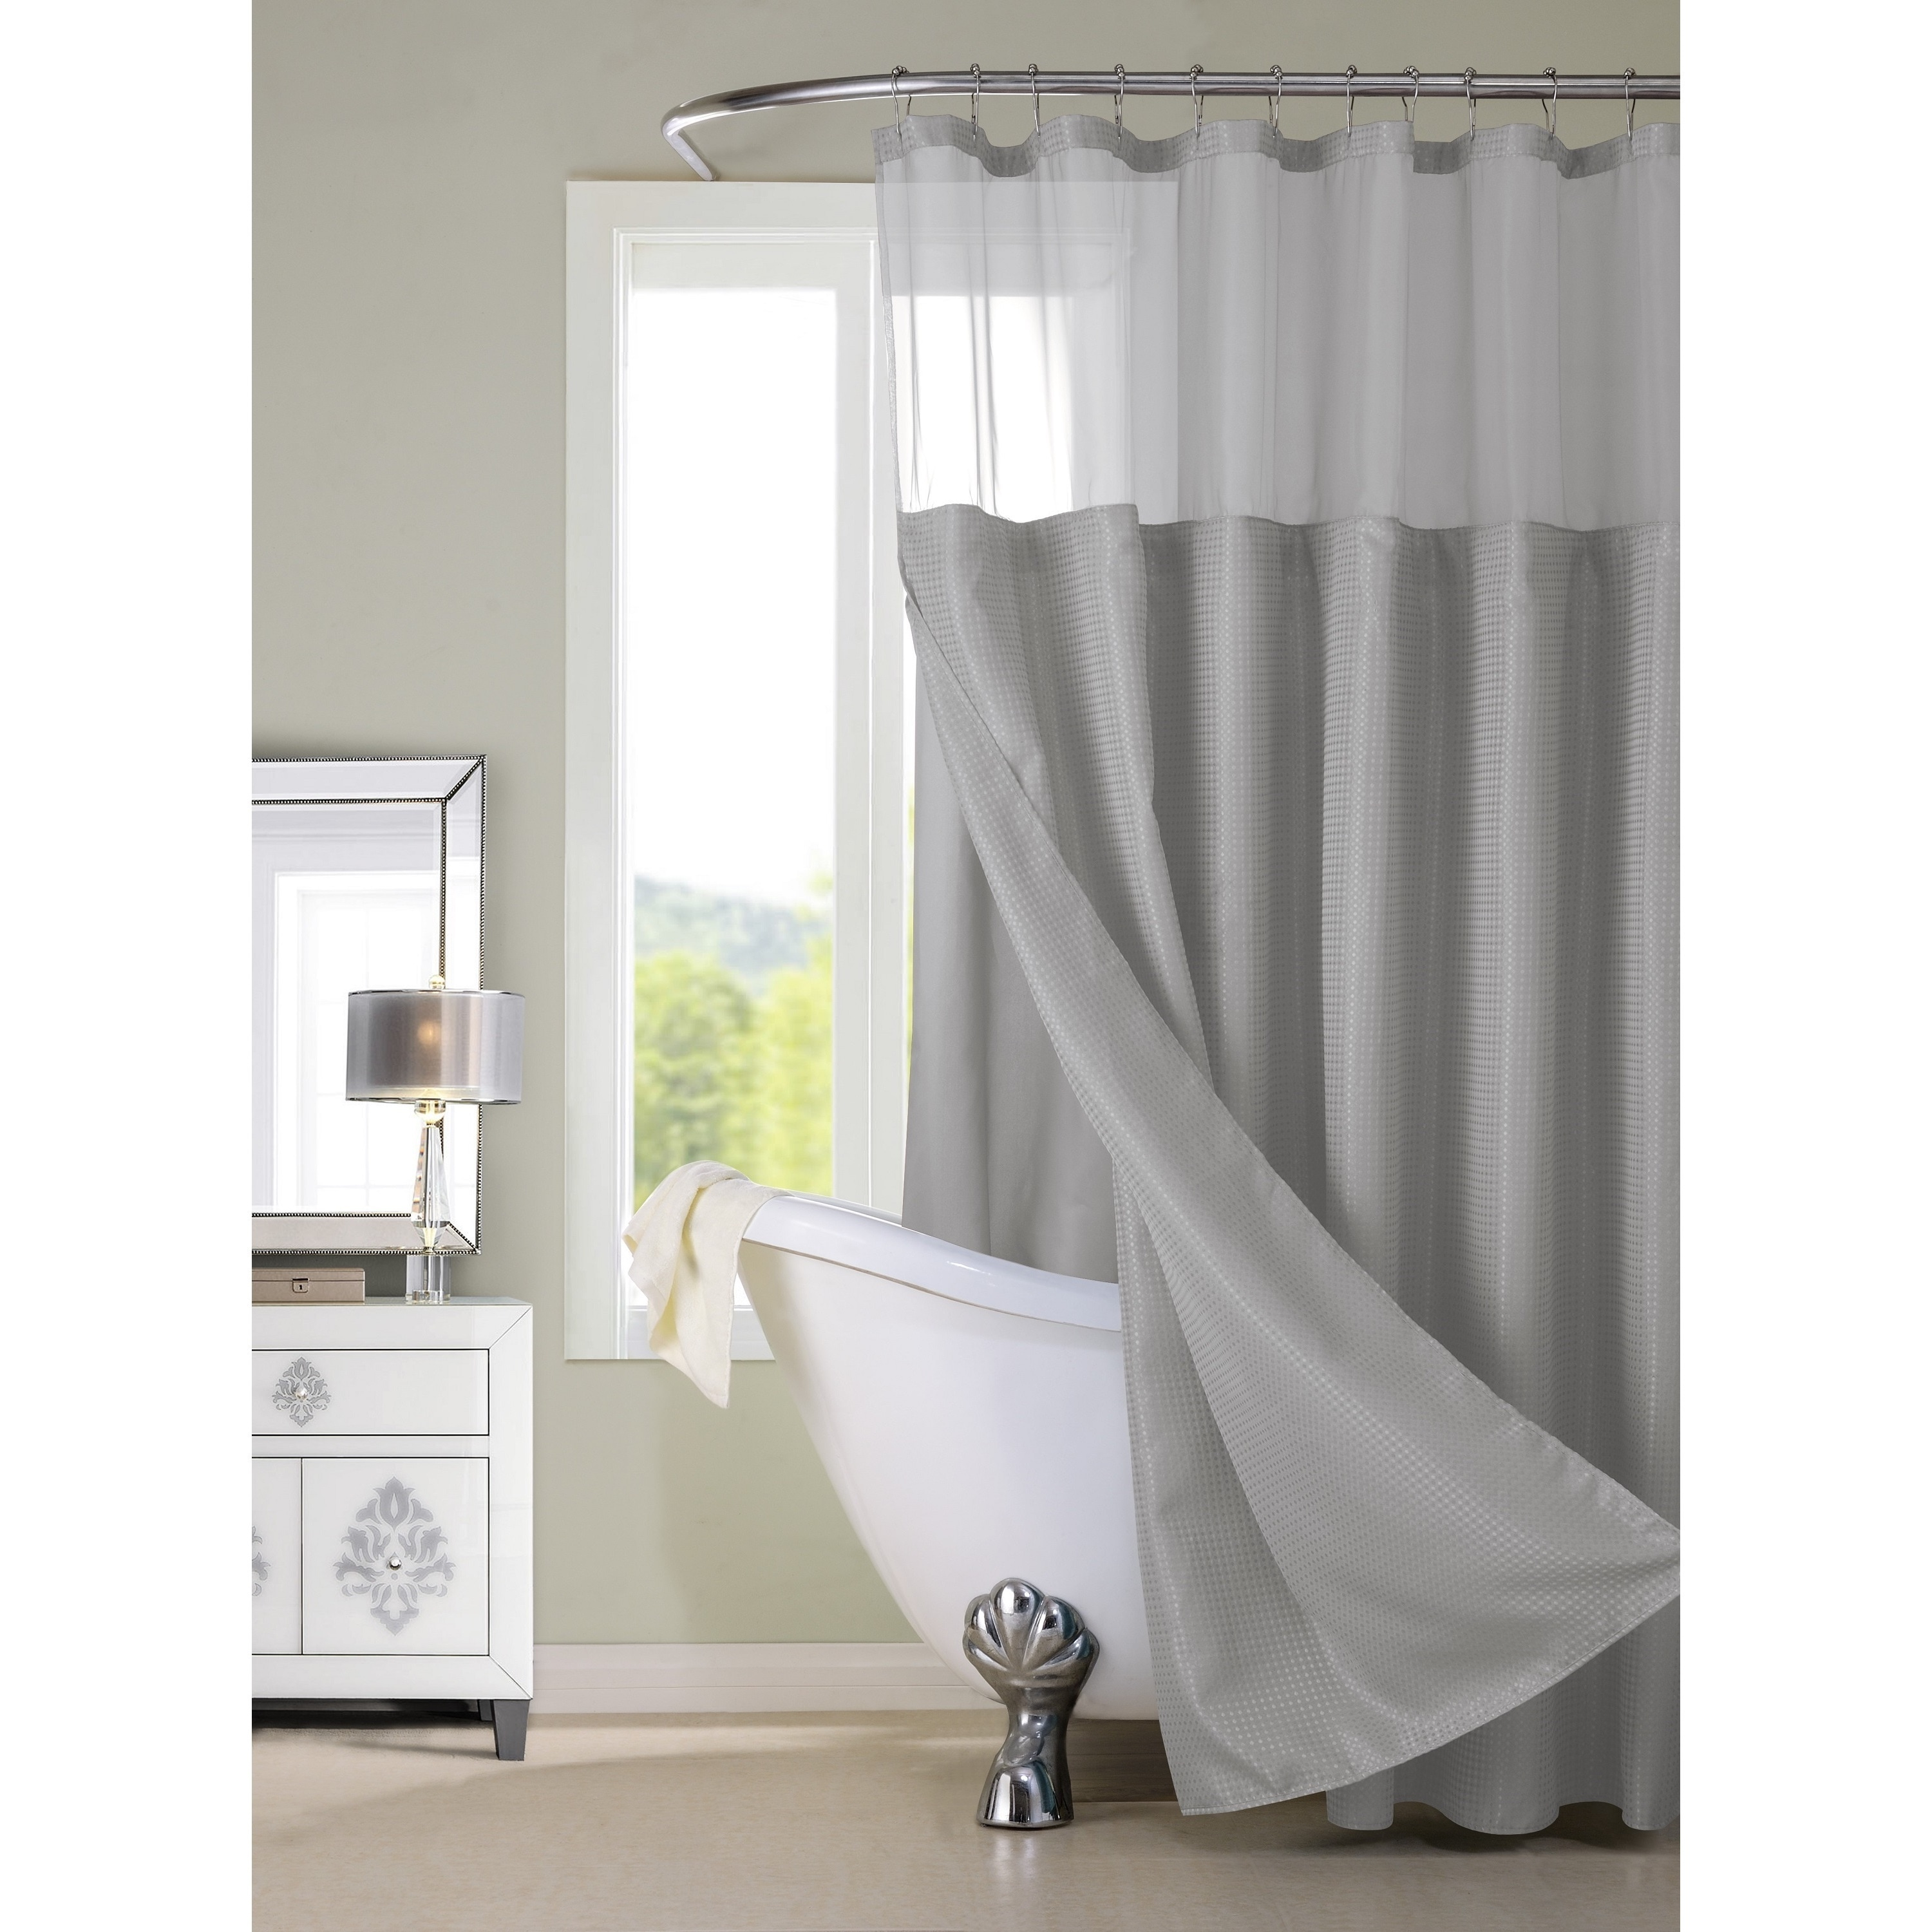 Gracewood Hollow Asimov Hotel Shower Curtain With Detachable Liner Free Shipping On Orders Over 45 20000983